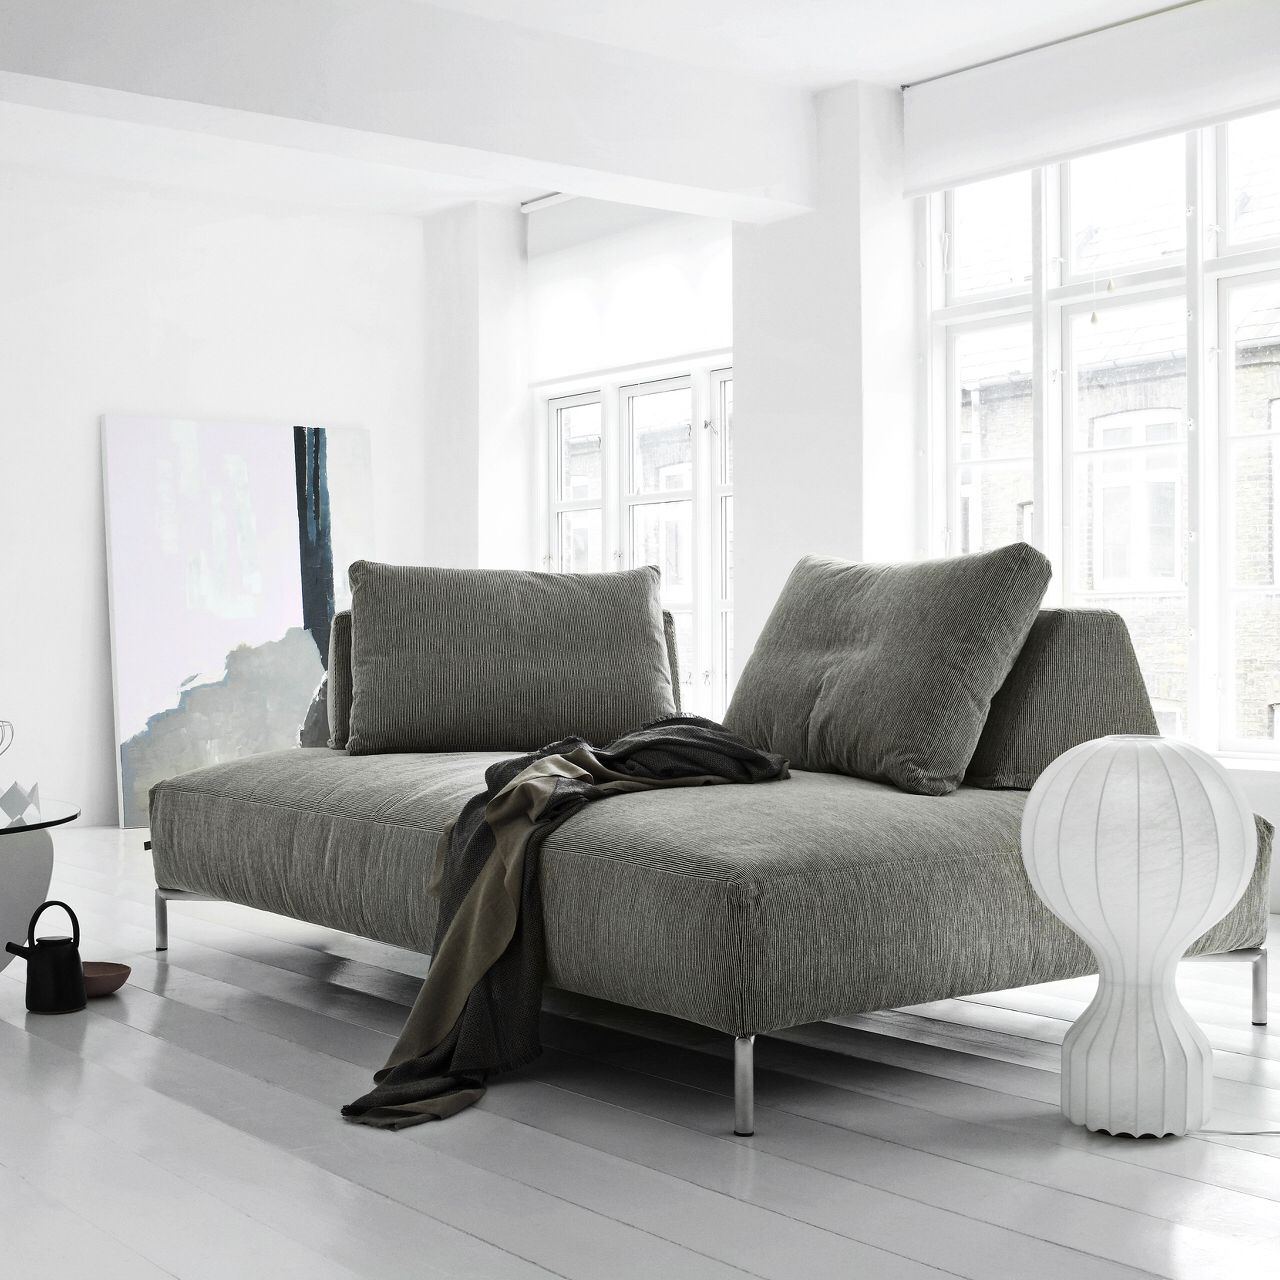 Bettsofa Coco Sofa Playtower Take A Seat Sofas Bett Sofa